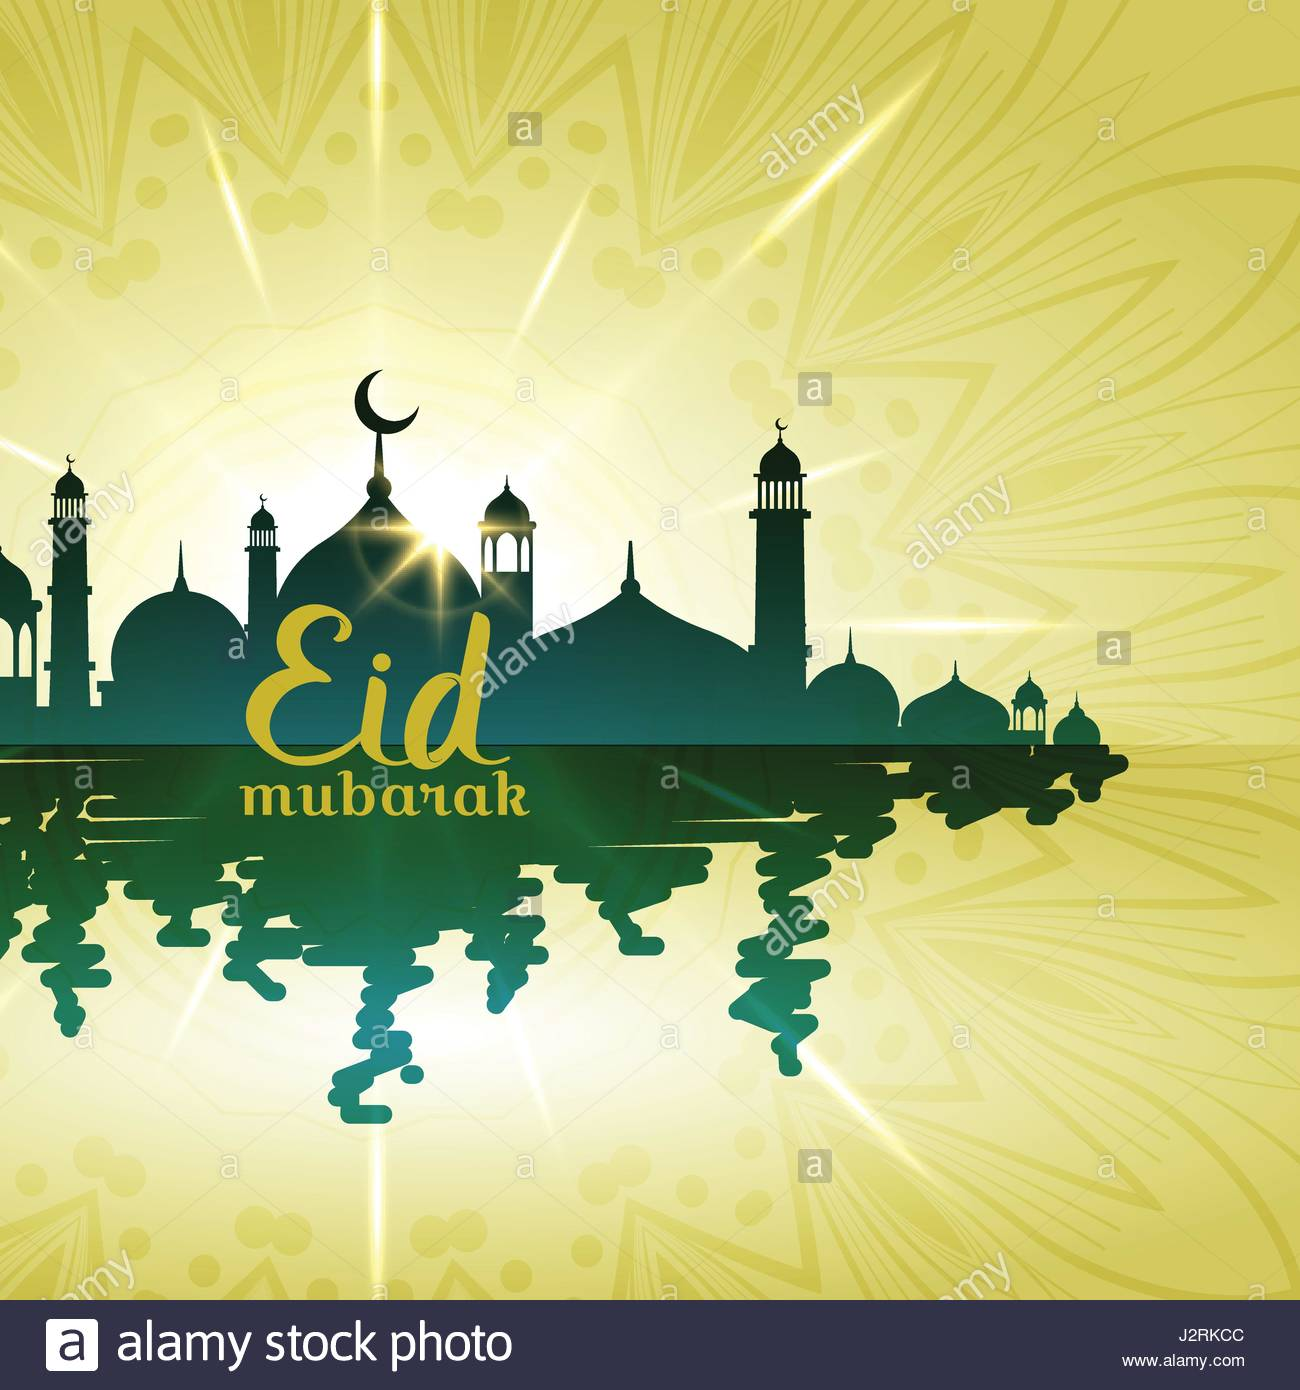 eid mubarak background with mosque with water reflection - Stock Vector